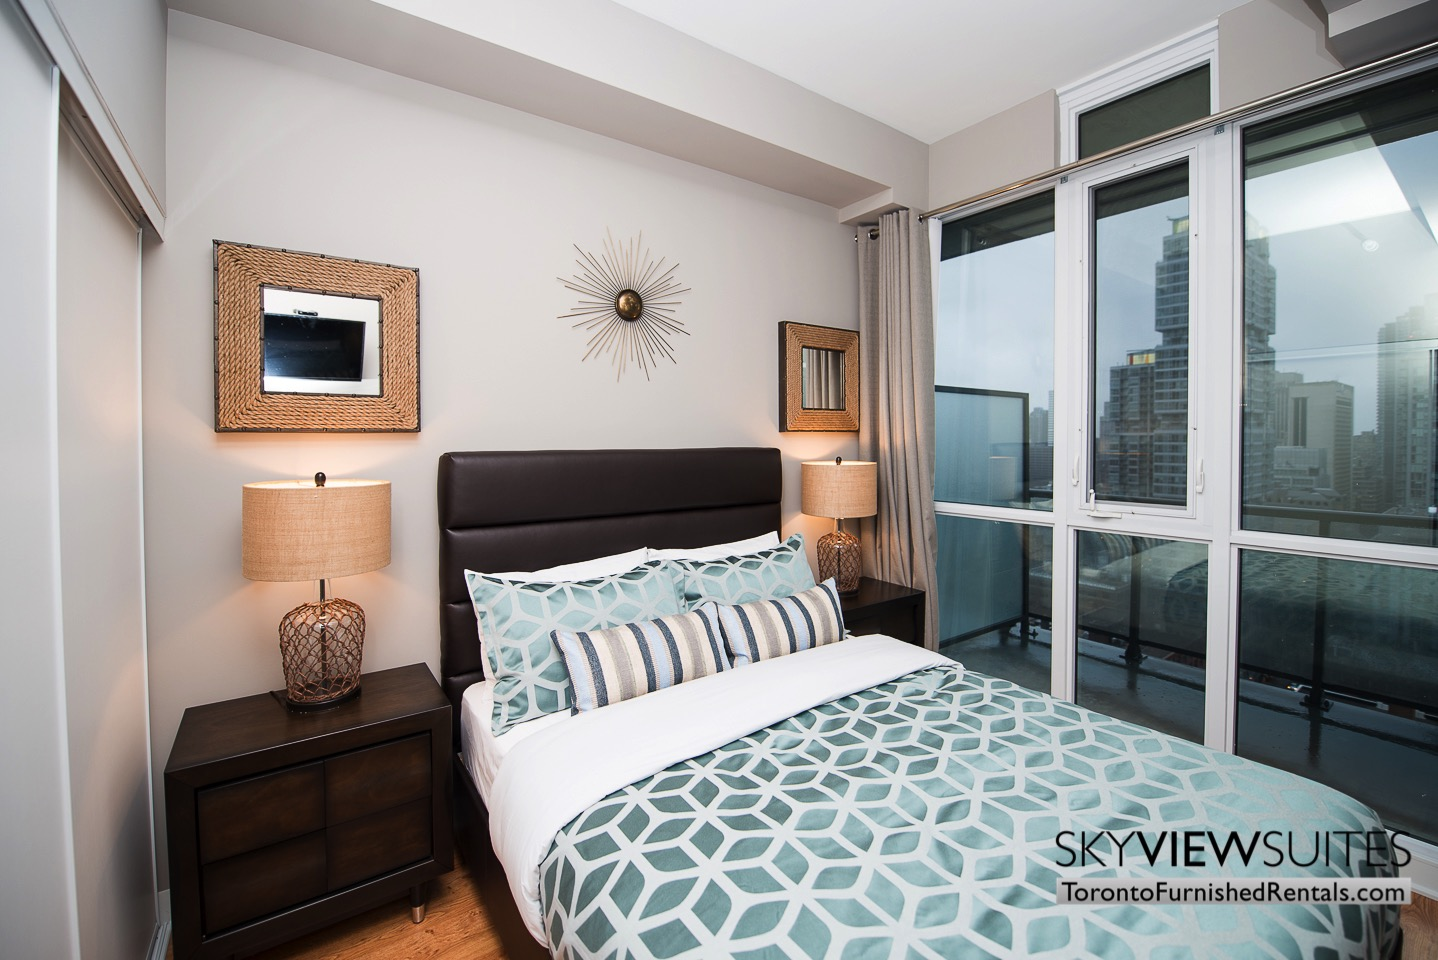 furnished-rentals-toronto-bedroom-financial-district